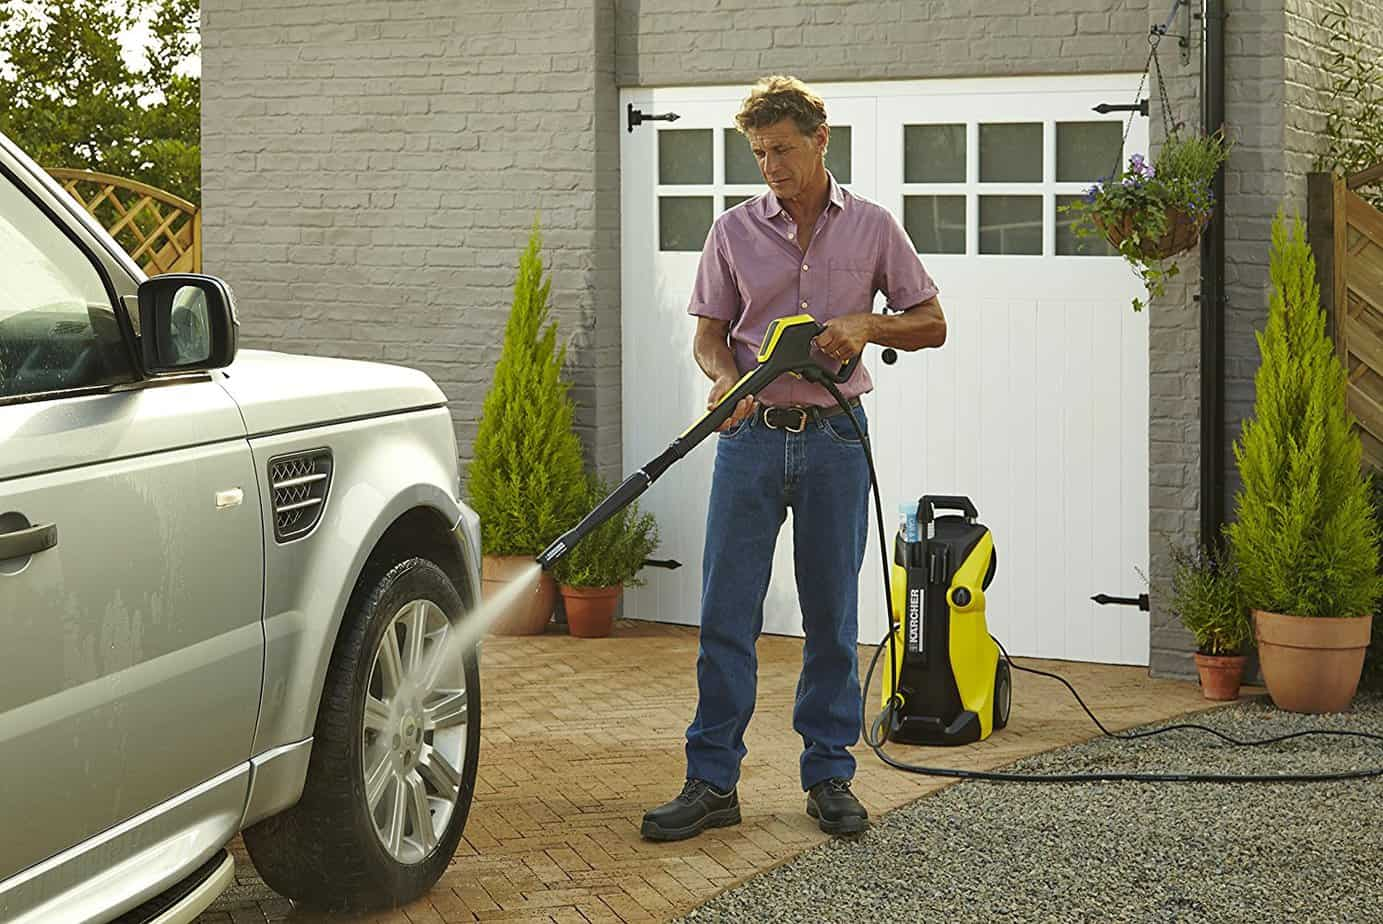 BEST OF THE BEST - Karcher K7 Pressure Washer cleaning cars